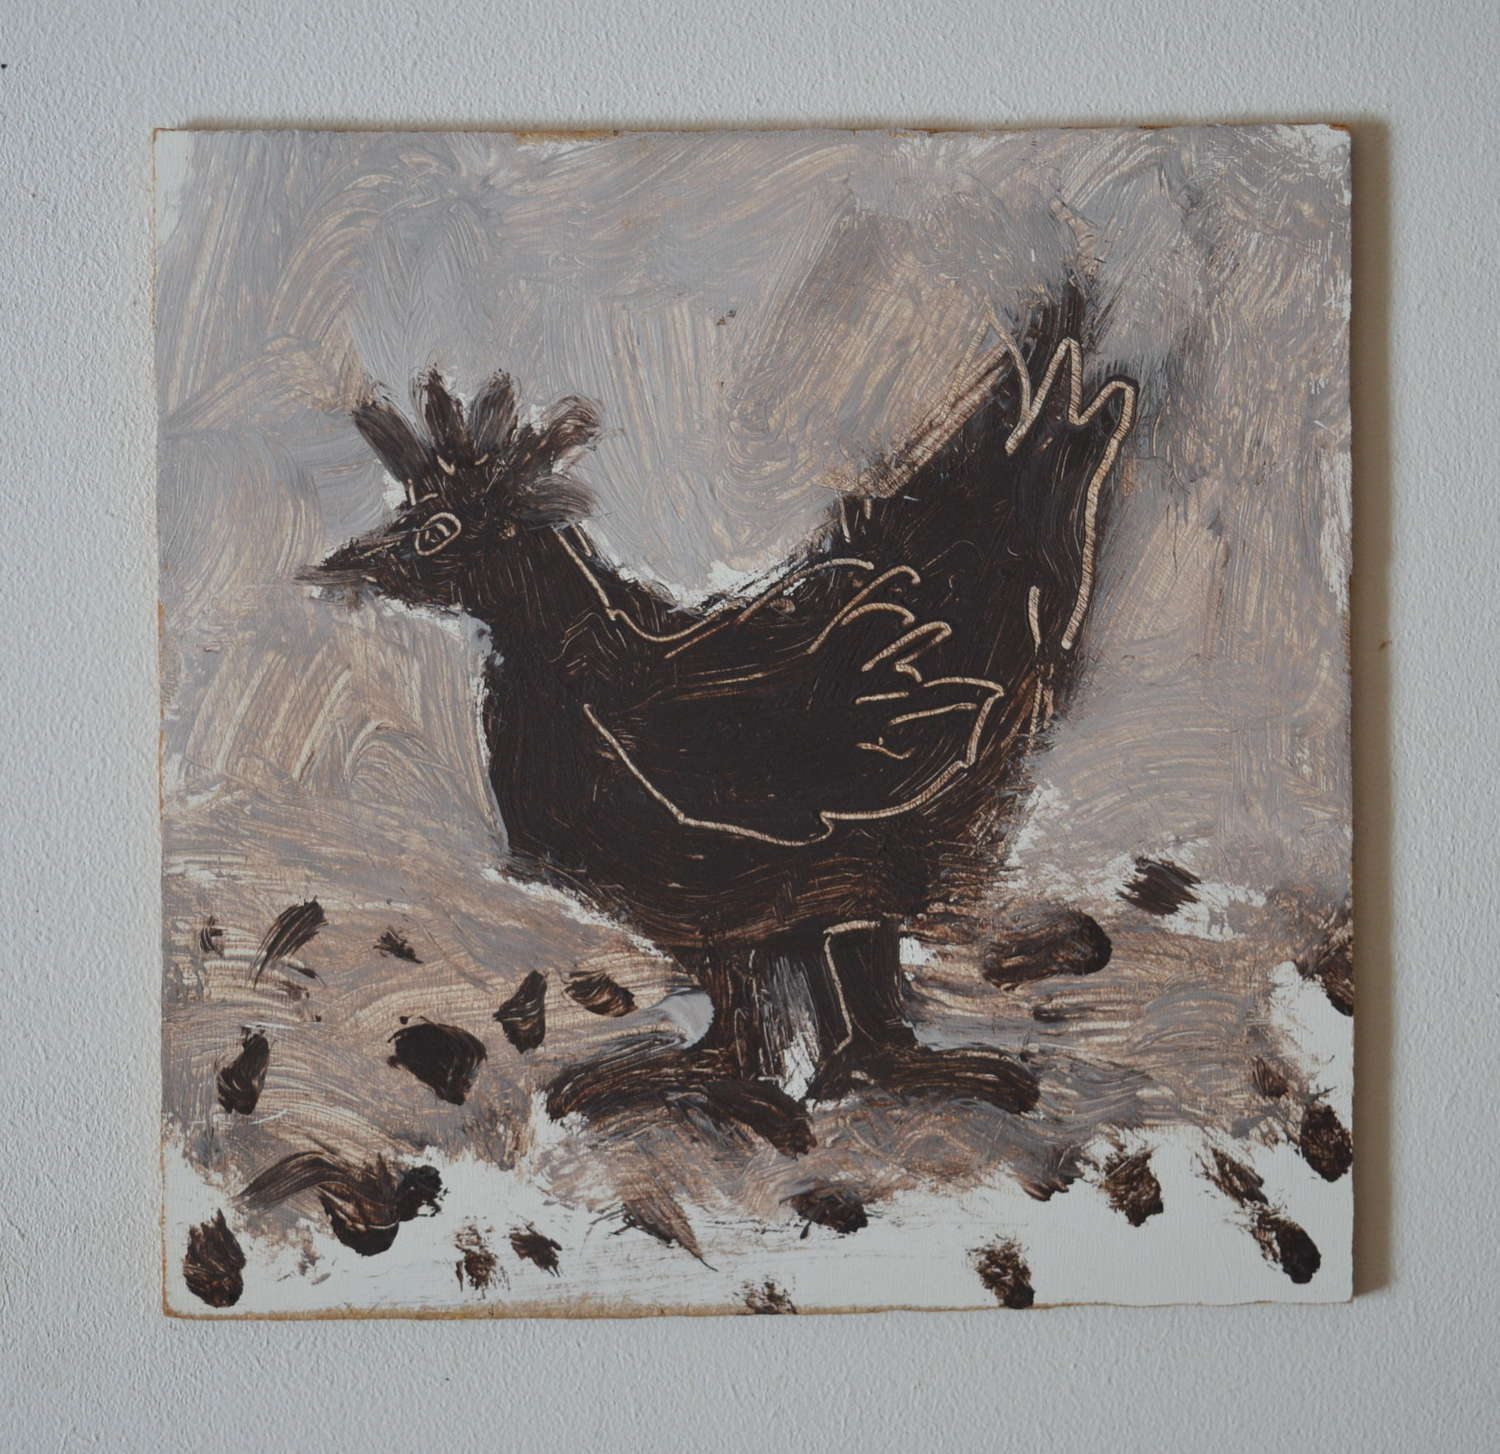 DAVID PEARCE CHICKEN STUDY